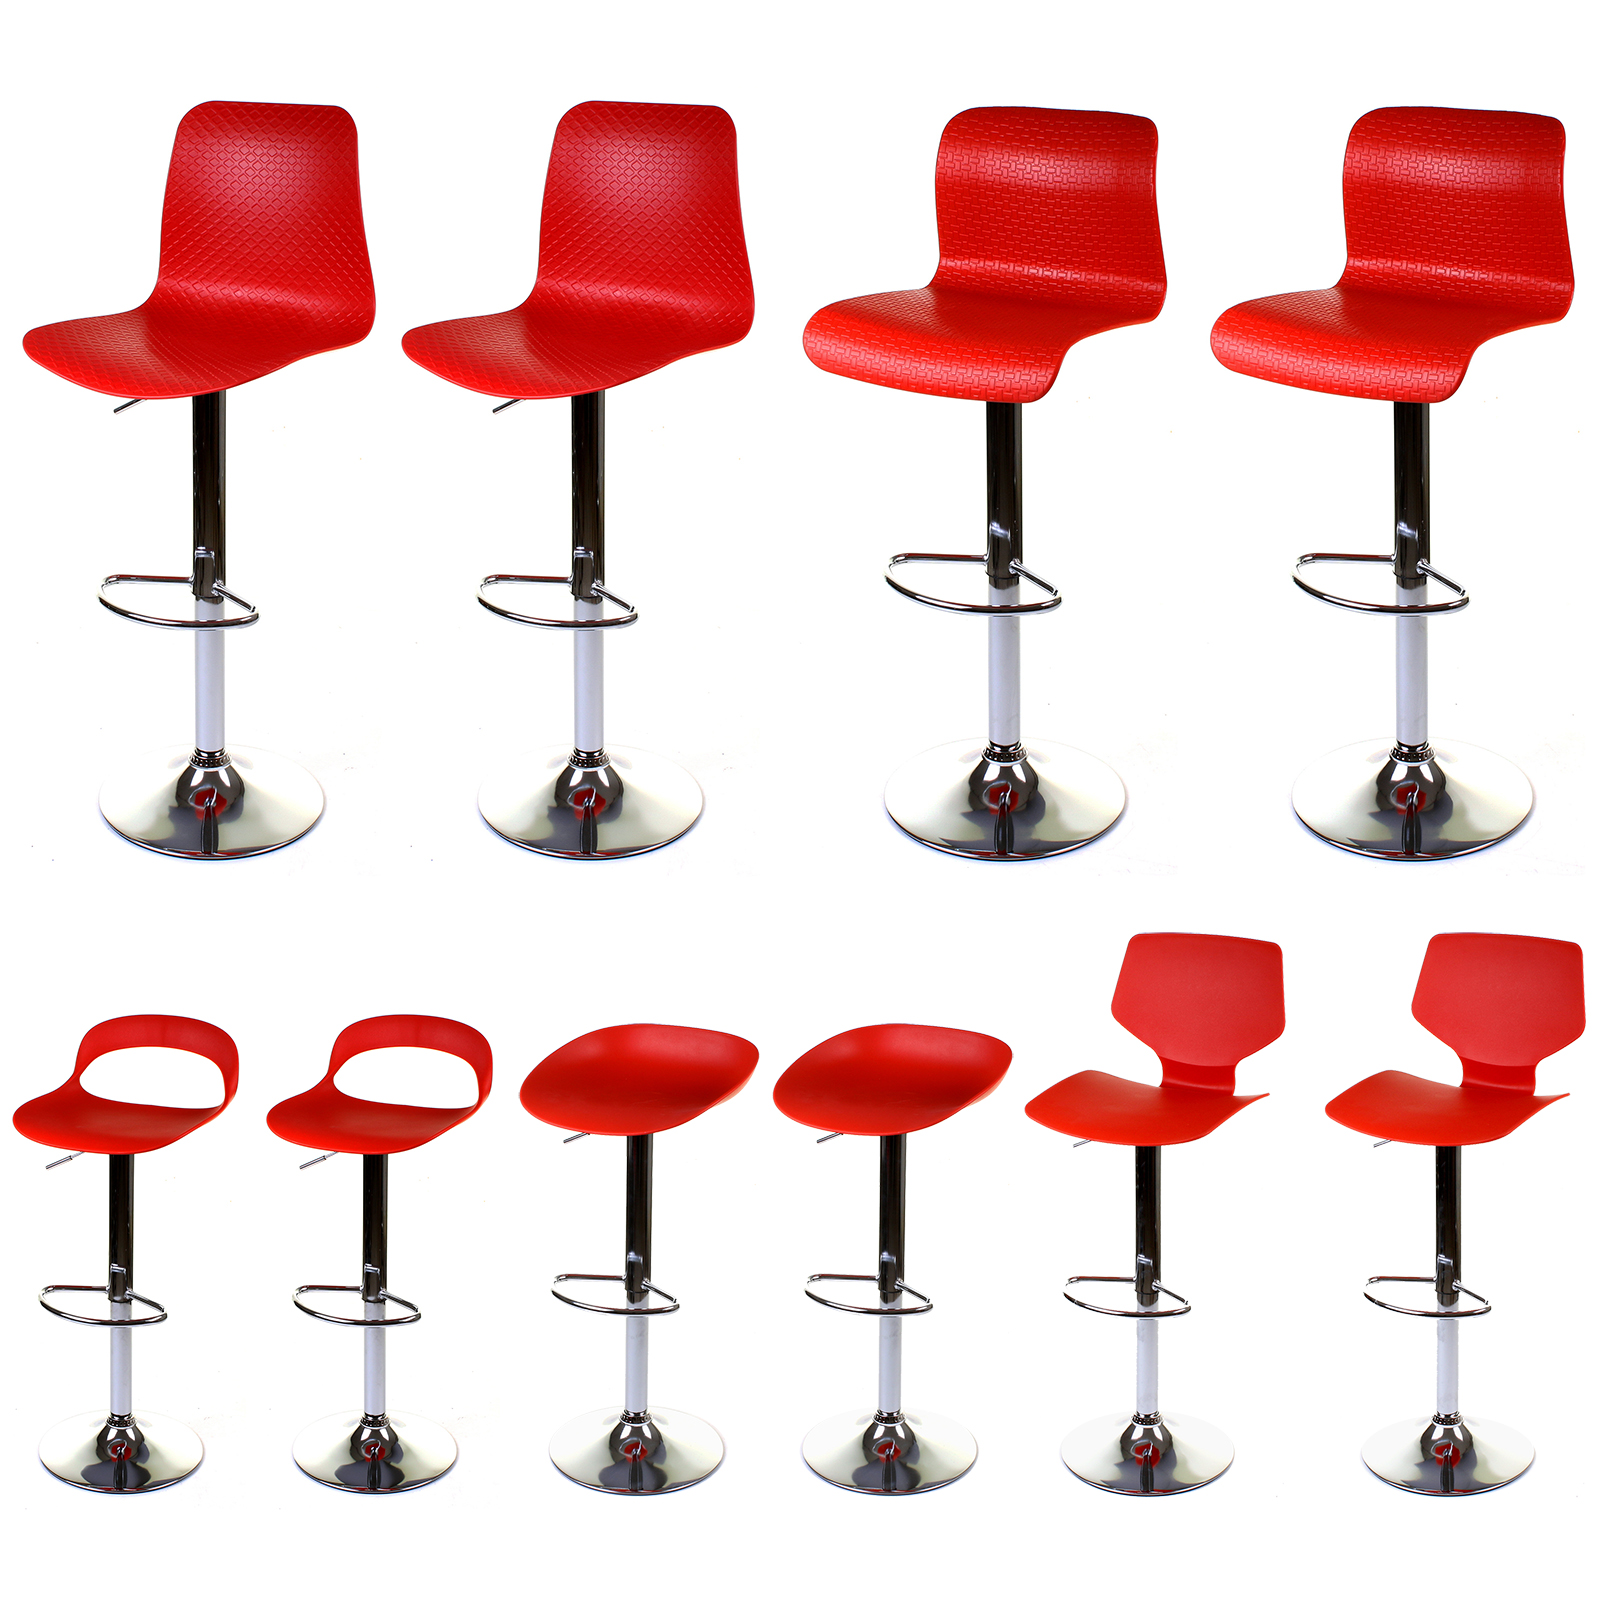 2x Red Bar Stools Chairs Gas Lift Height Adjustable Kitchen